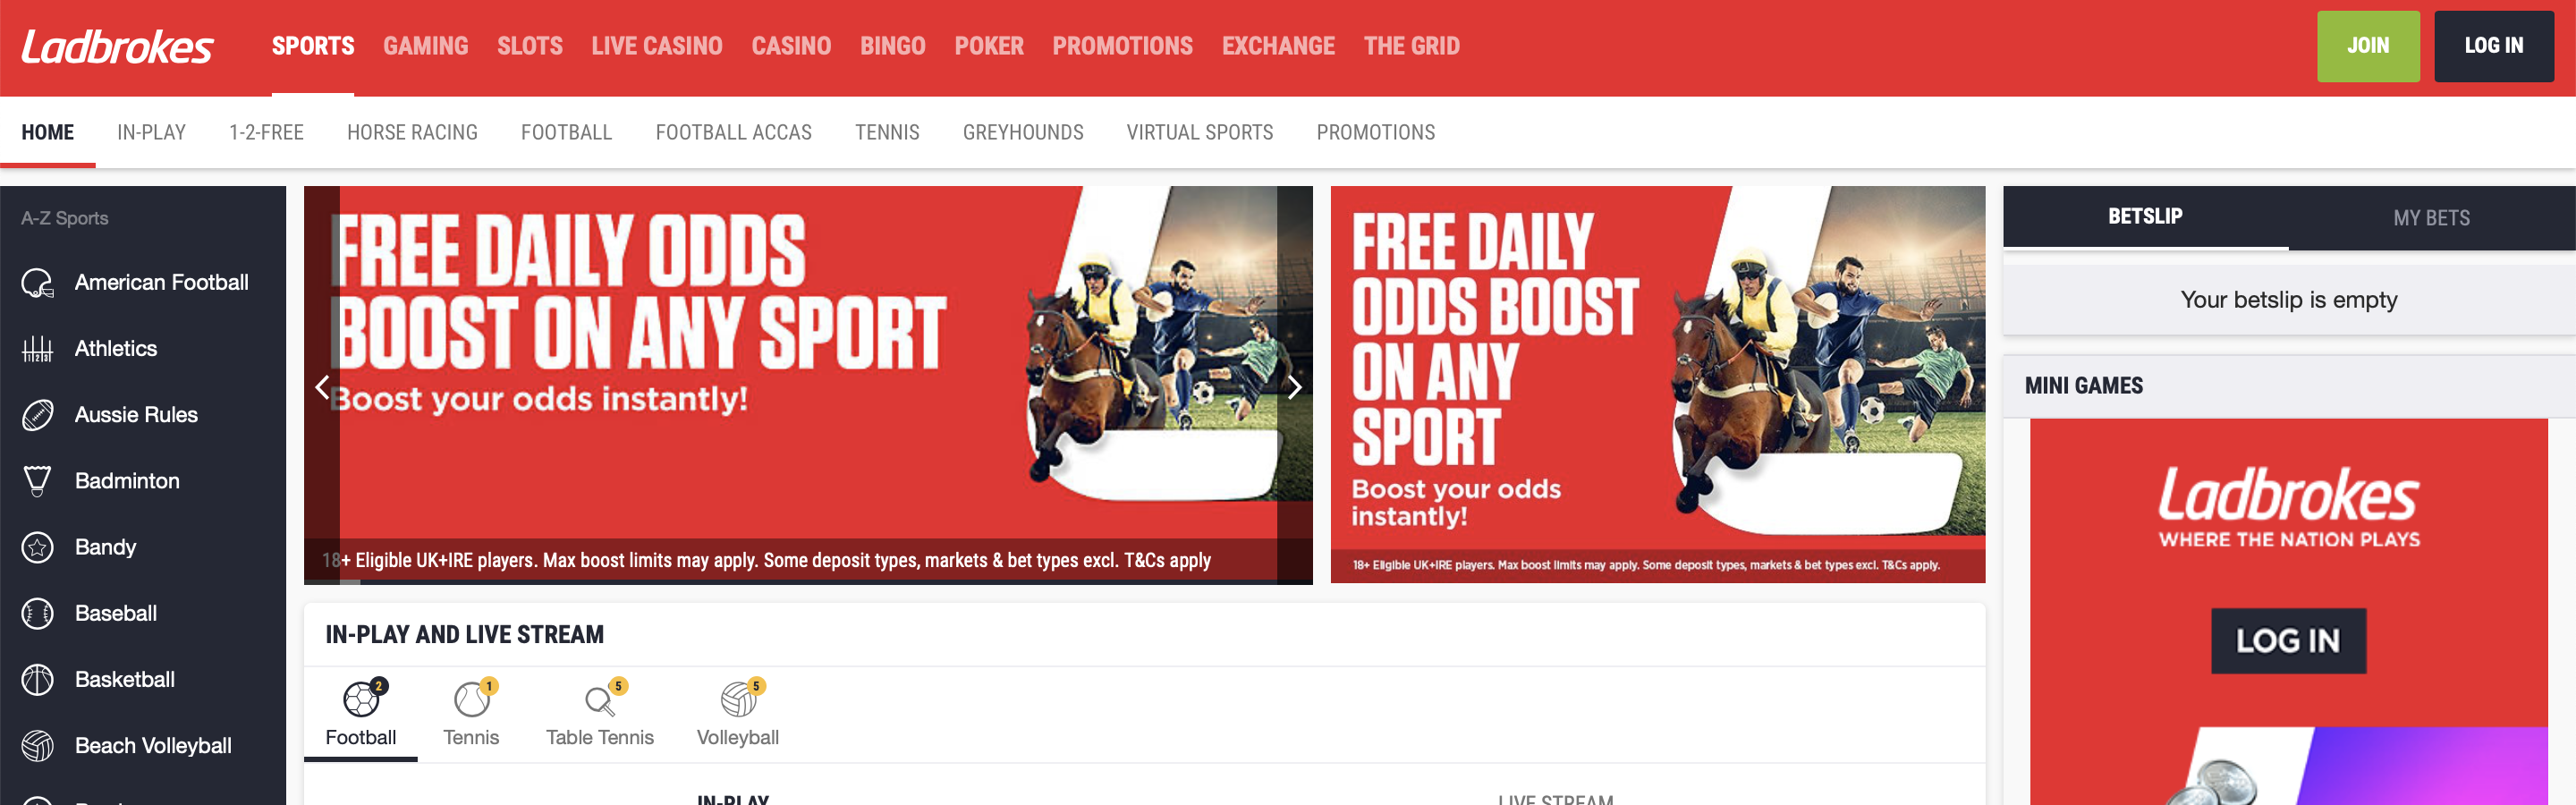 Ladbrokes UK Betting Site